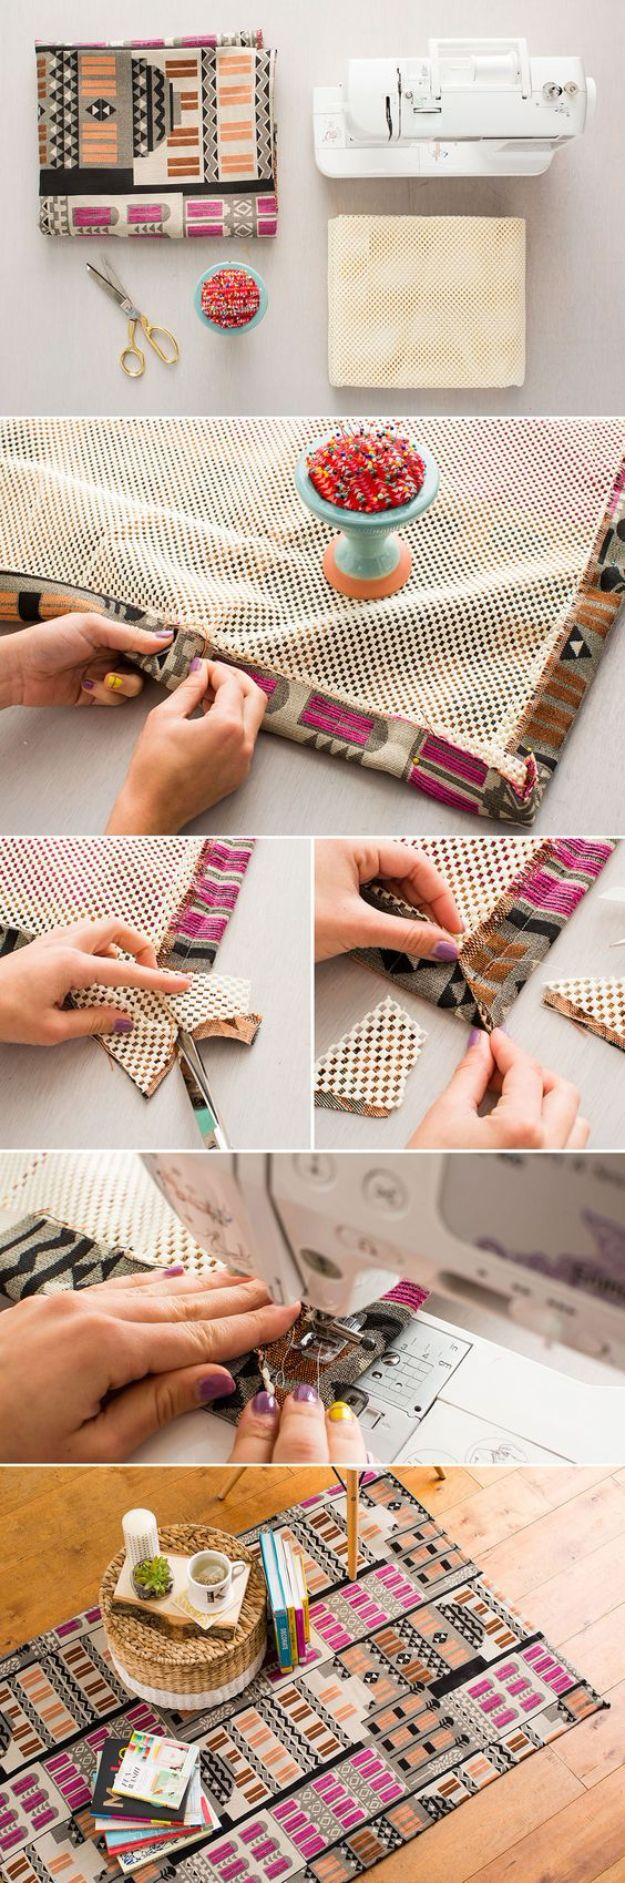 DIY Rugs - DIY Fabric Rug Hack - Ideas for An Easy Handmade Rug for Living Room, Bedroom, Kitchen Mat and Cheap Area Rugs You Can Make - Stencil Art Tutorial, Painting Tips, Fabric, Yarn, Old Denim Jeans, Rope, Tshirt, Pom Pom, Fur, Crochet, Woven and Outdoor Projects - Large and Small Carpet http://diyjoy.com/diy-rug-tutorials